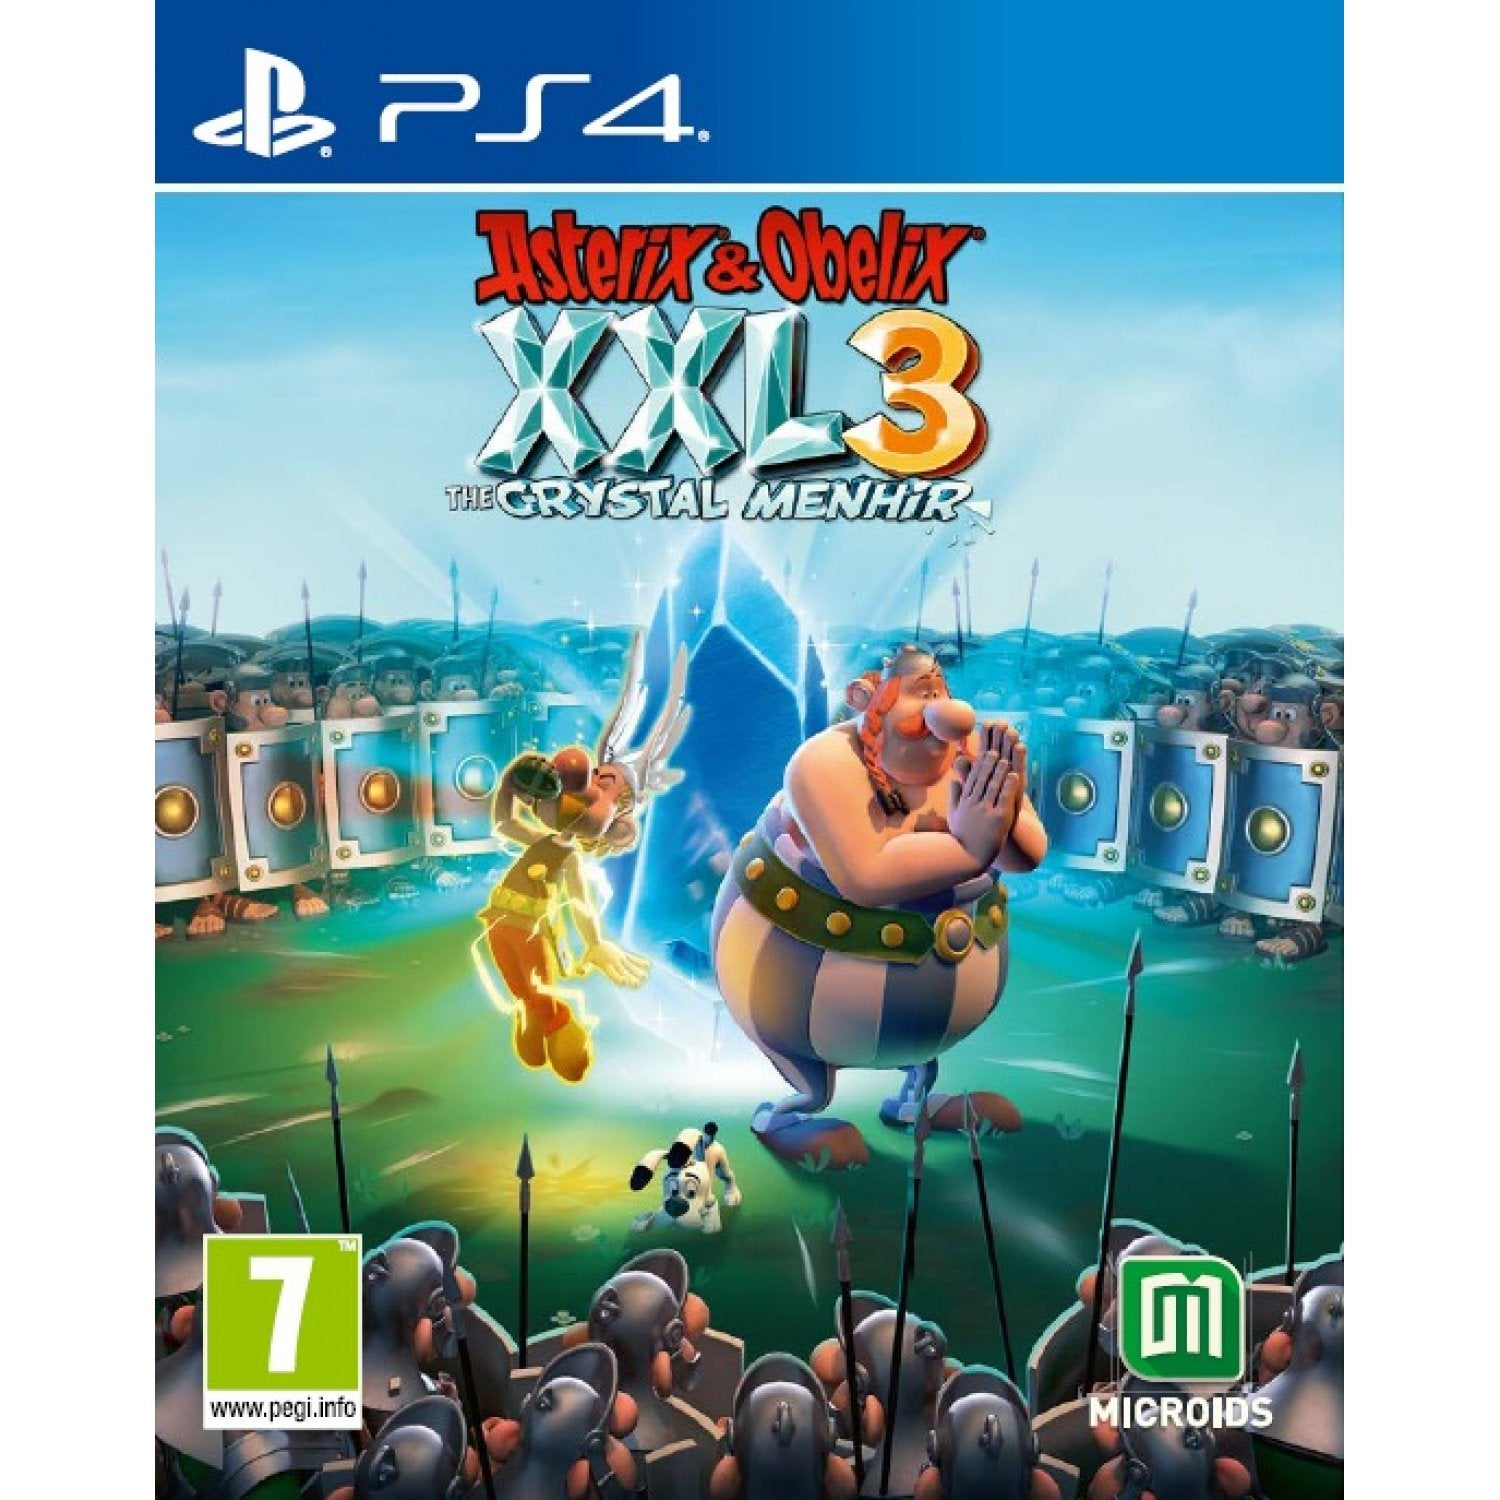 PS4 Asterix & Obelix XXL 3: The Crystal Menhir